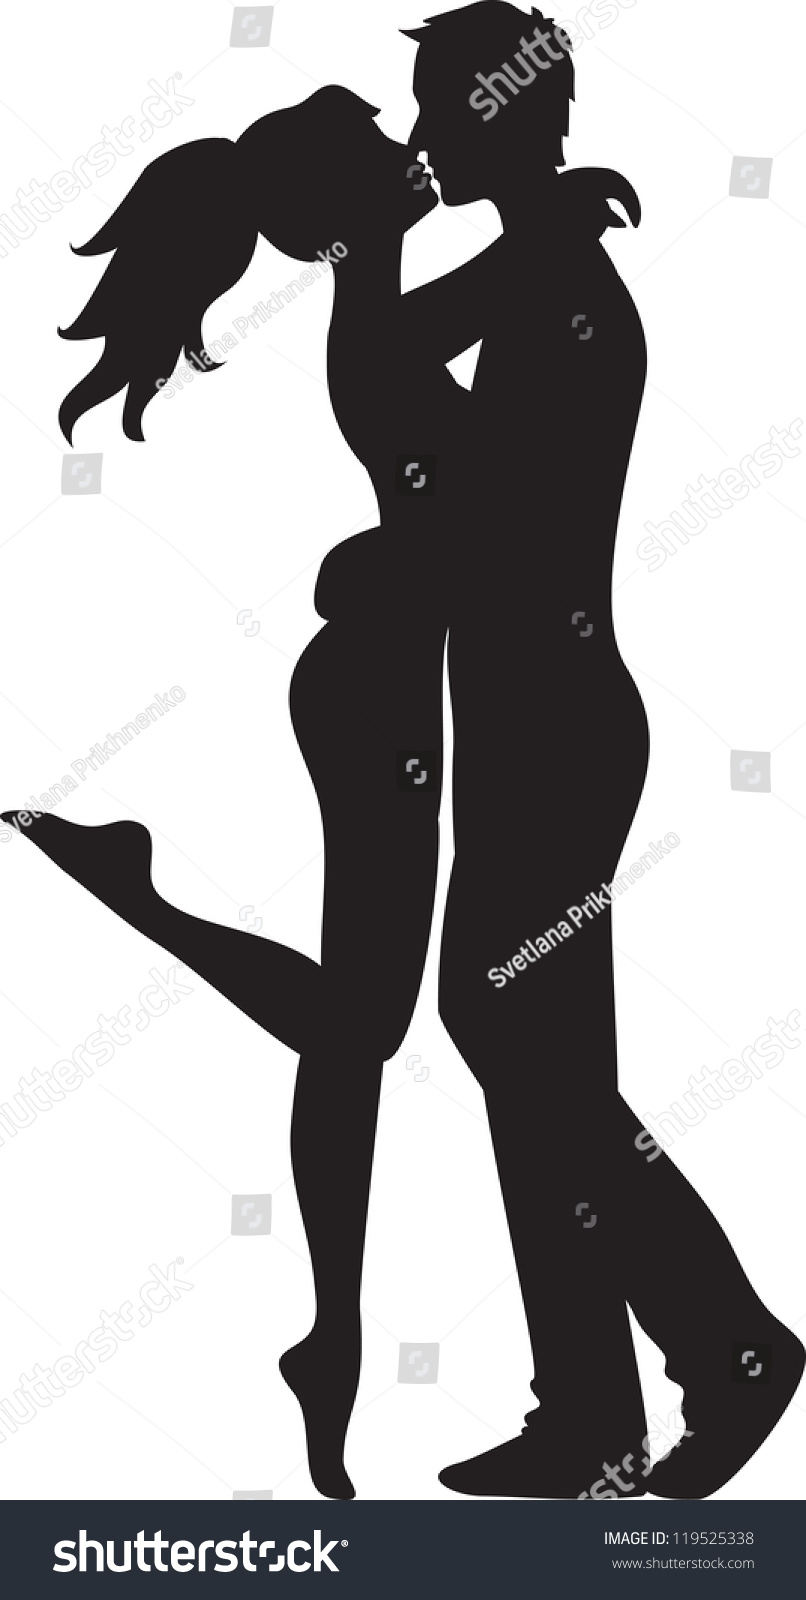 Teen couple kissing silhouette